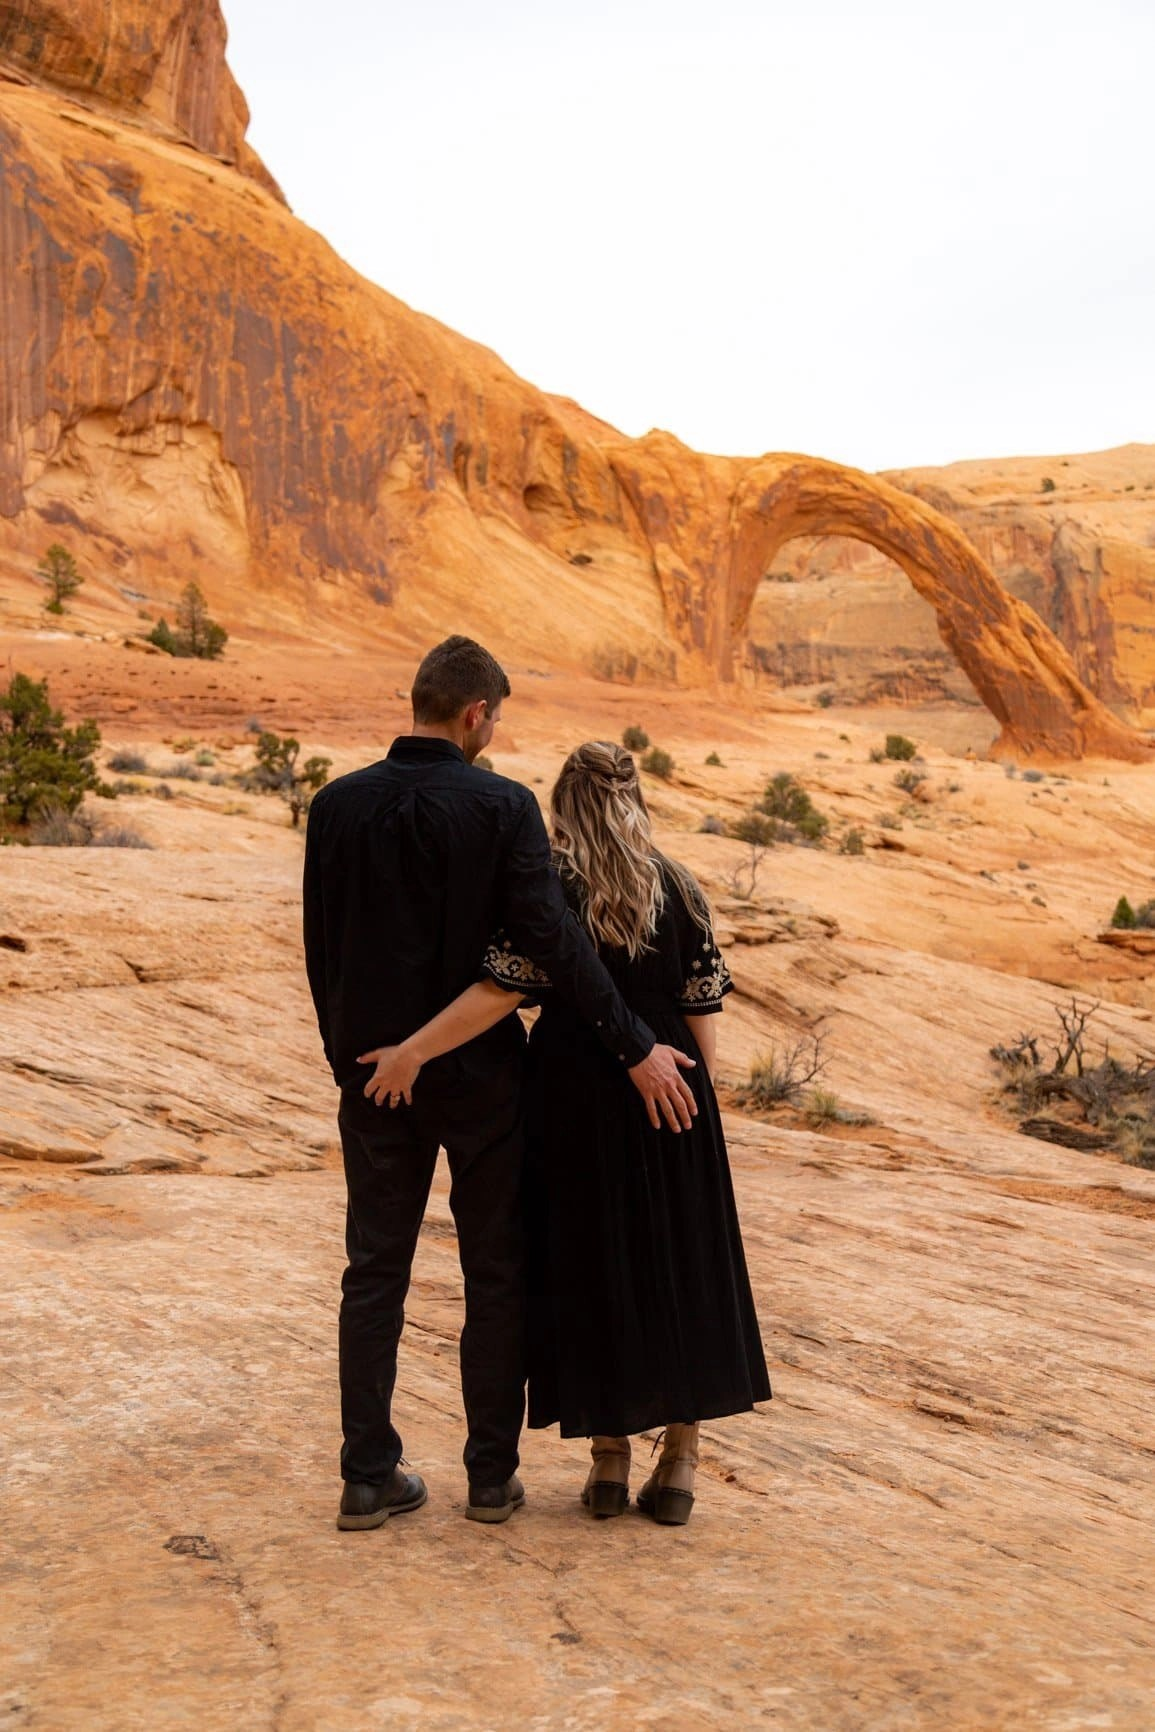 Intimate couple in front of the Corona Arch in Moab. Go out and adventure safely with those you love